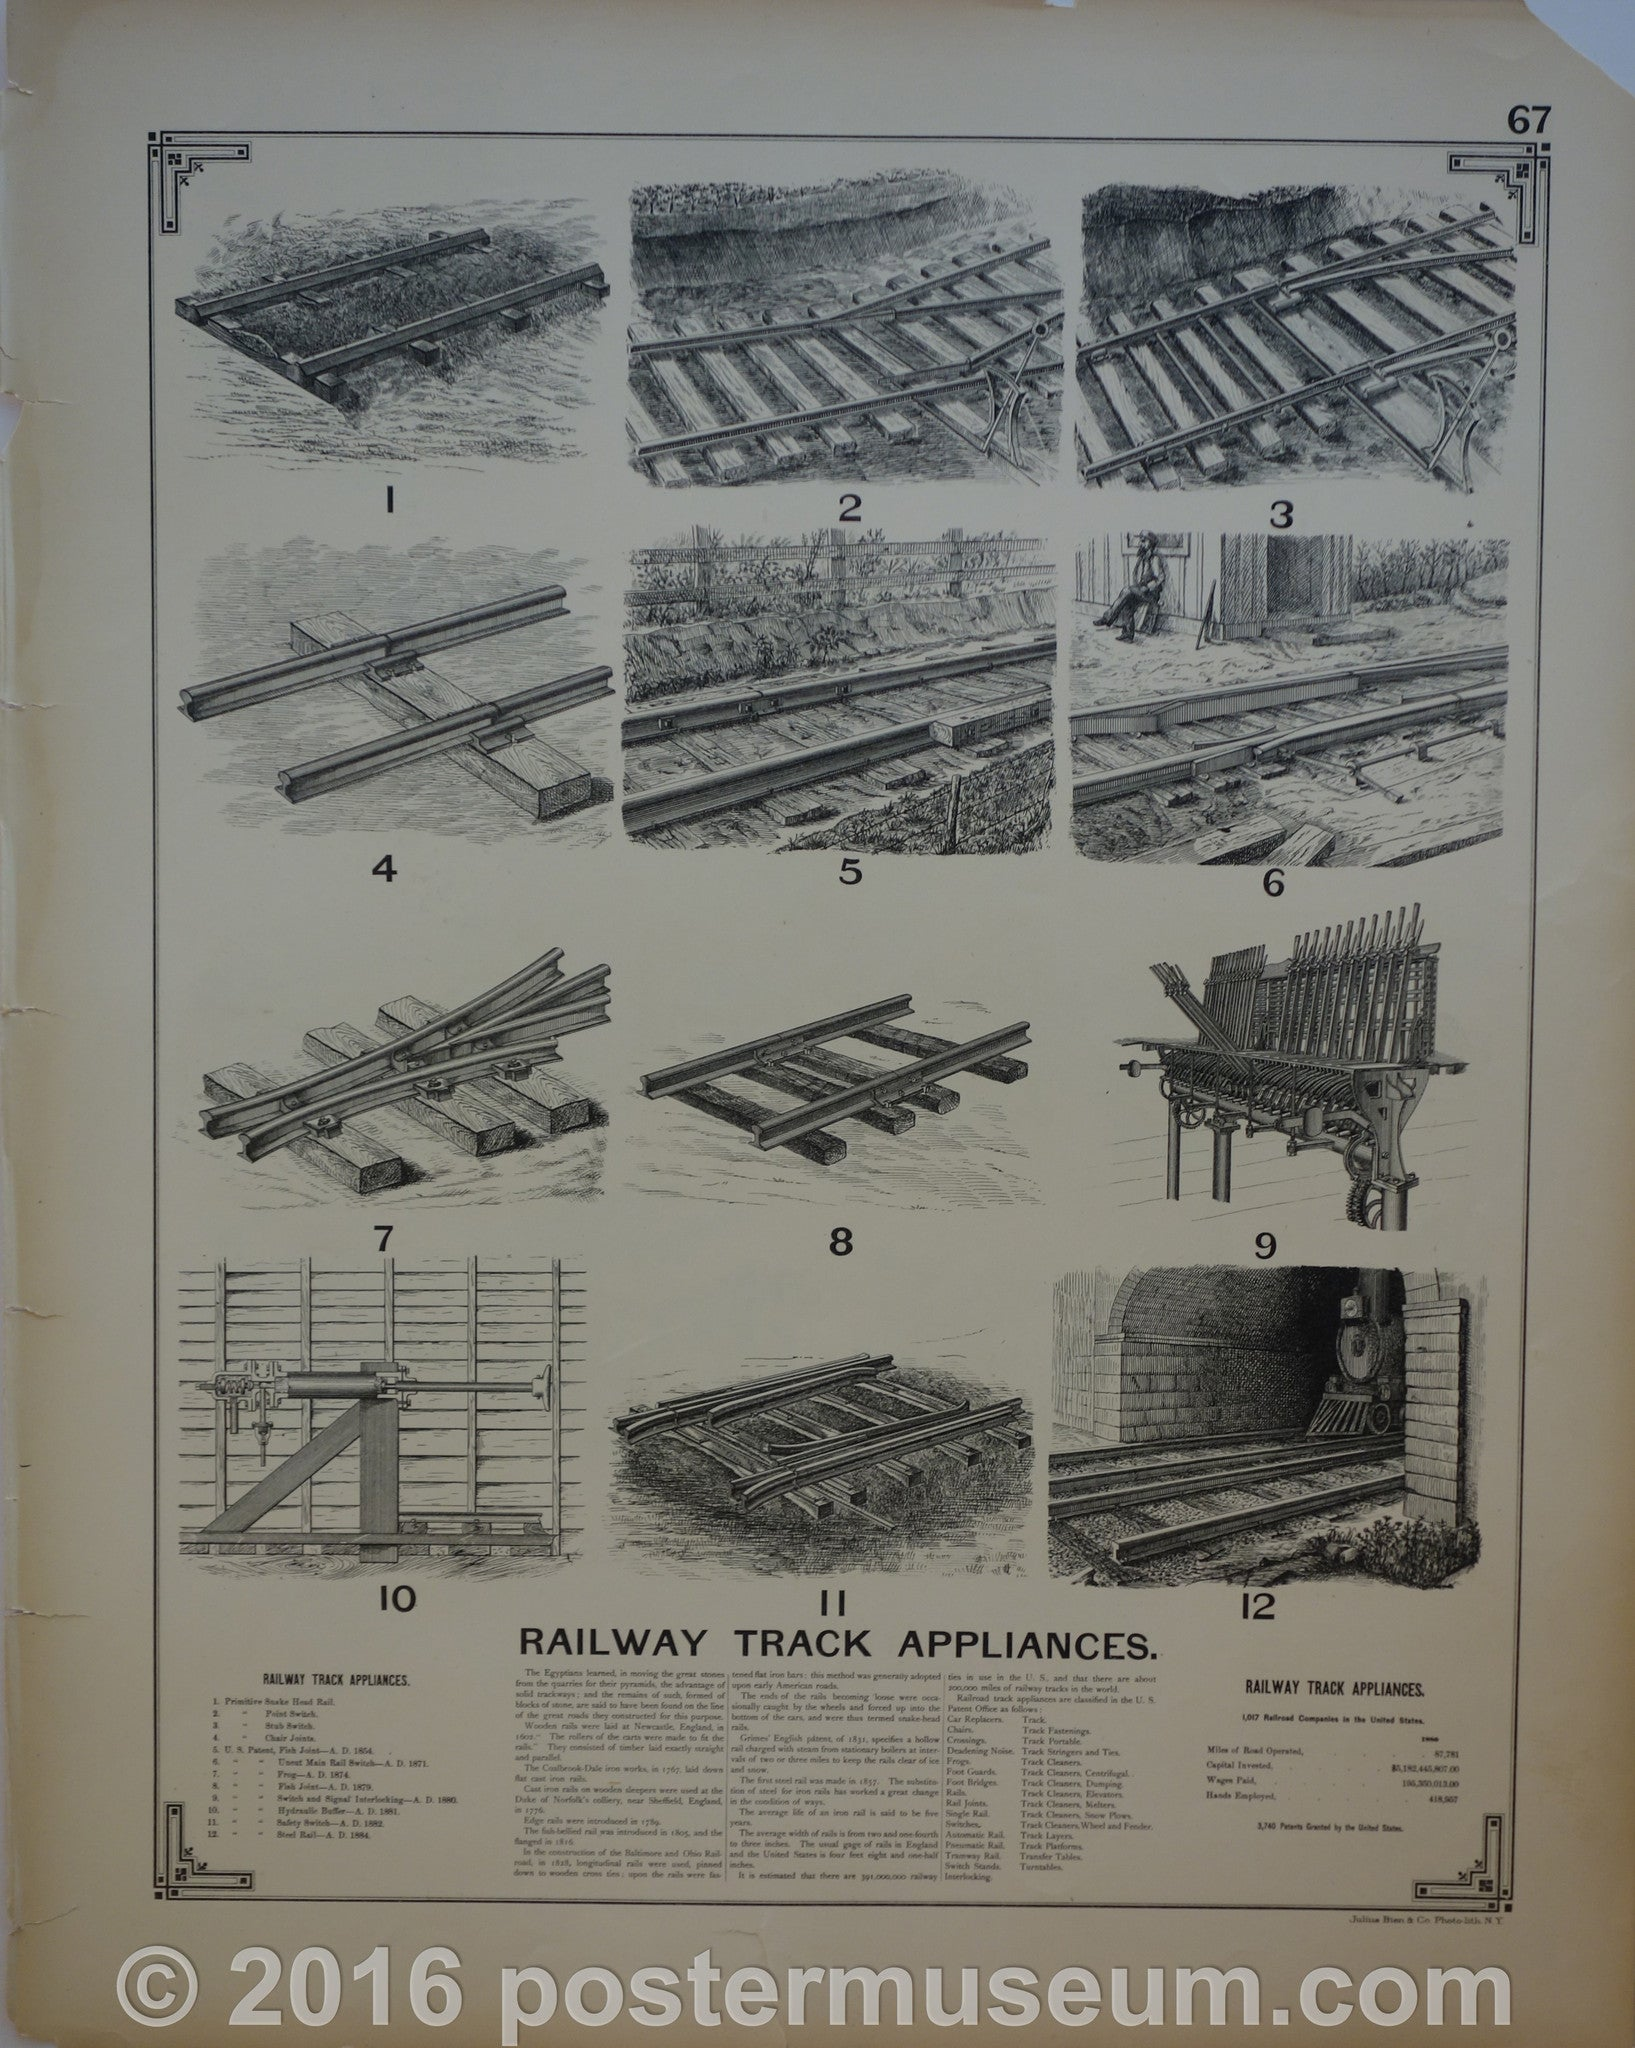 Railway track appliances and Road making machines